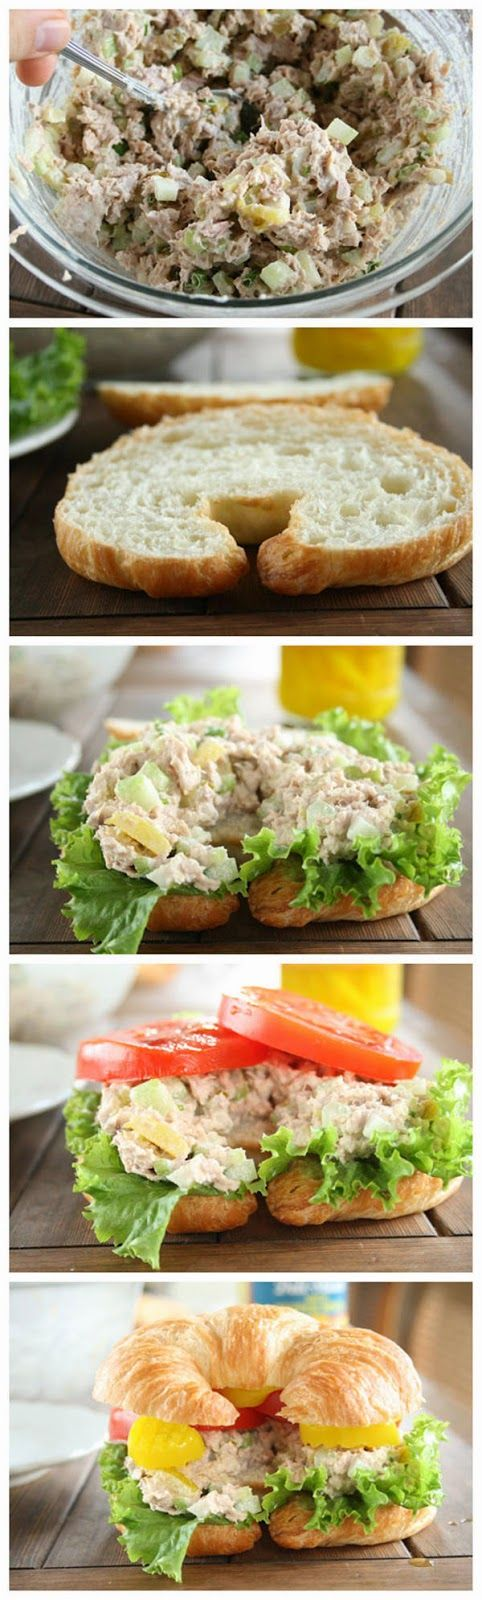 The Best Tuna Fish Sandwich Ingredients 2 - 7 oz. cans tuna packed in water, drained well 3 green onions, sliced {white and green parts} 1/4 cup chopped dill pickles 1 large celery stalk, chopped 1...